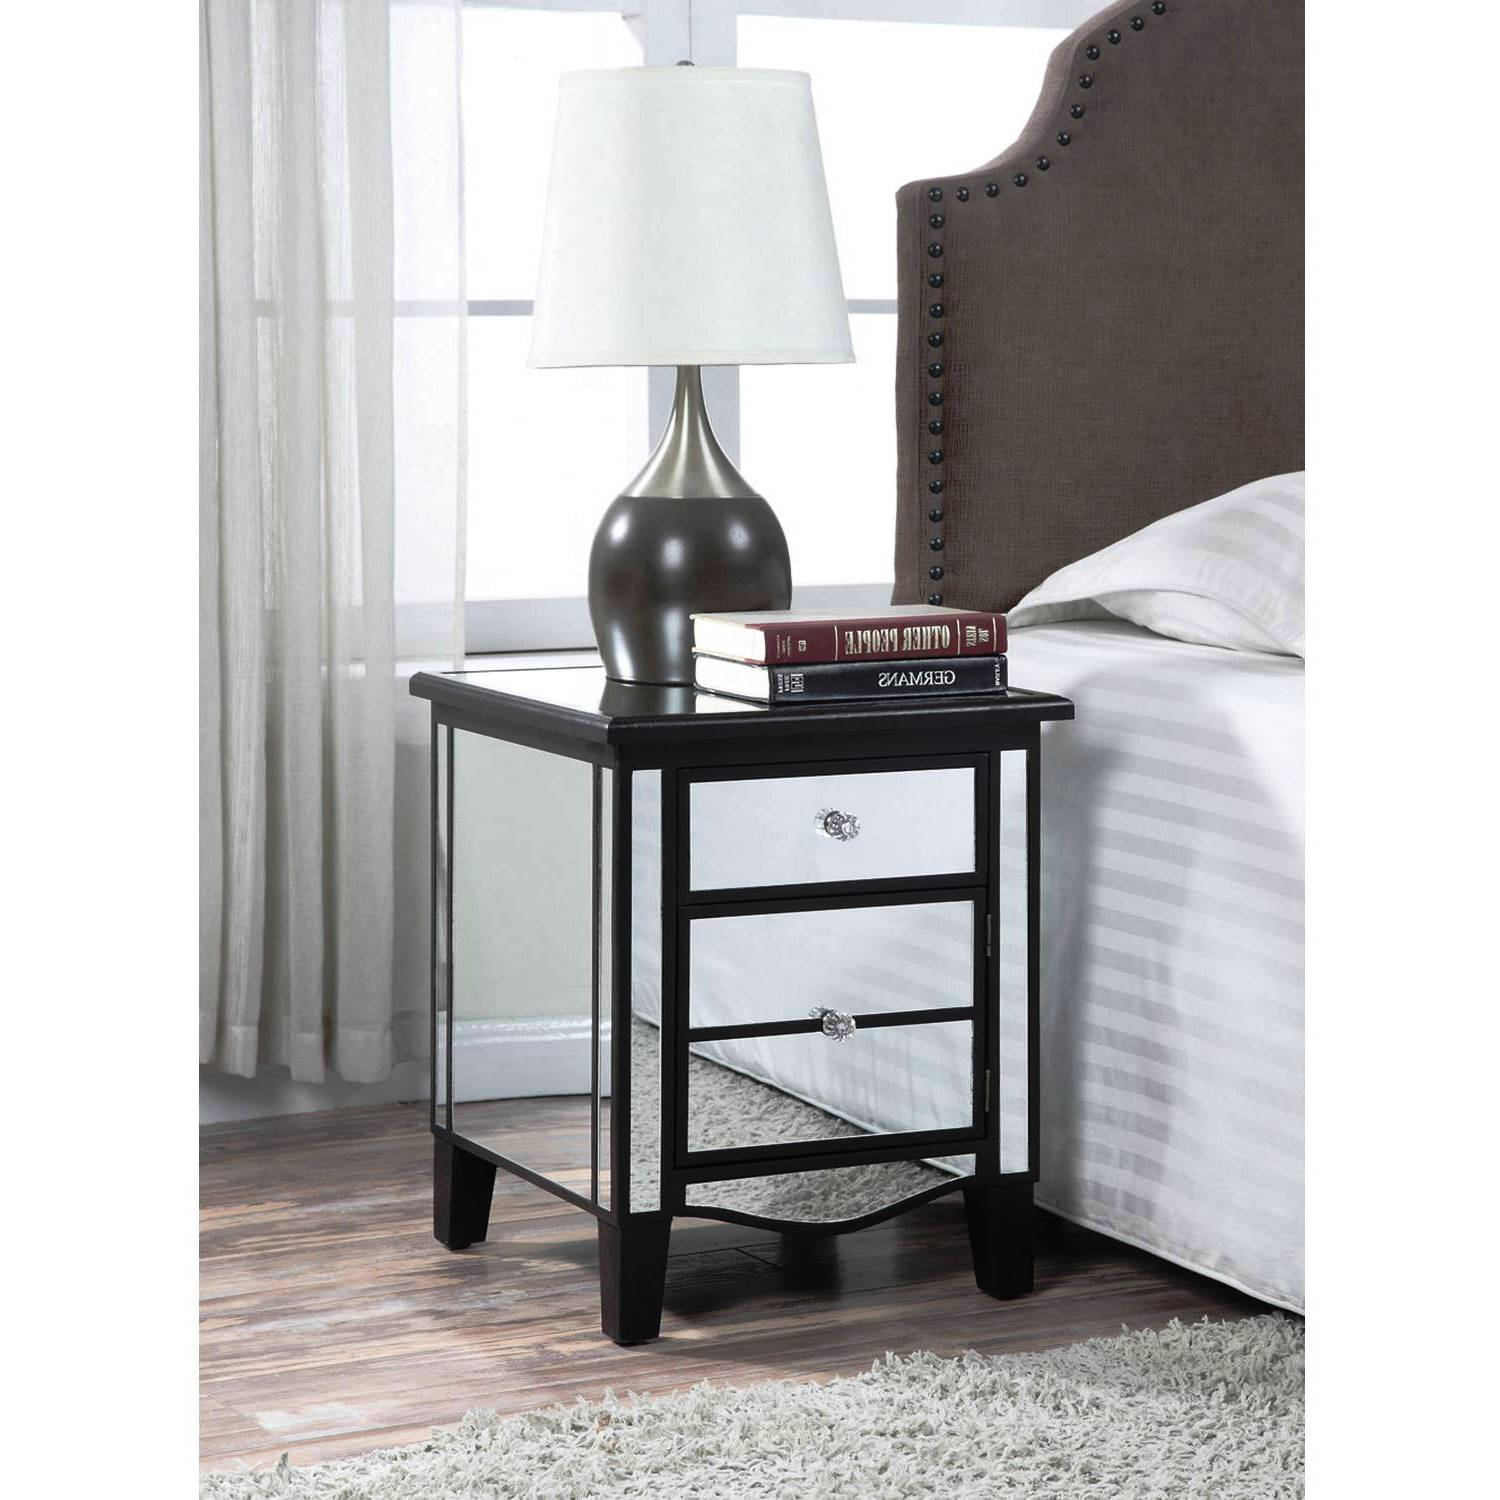 end tables furniture simple modern mirrored accent table with mirror dining room julia brown and white nightstand target side drawer black bedside drawers wood dresser ikea inch